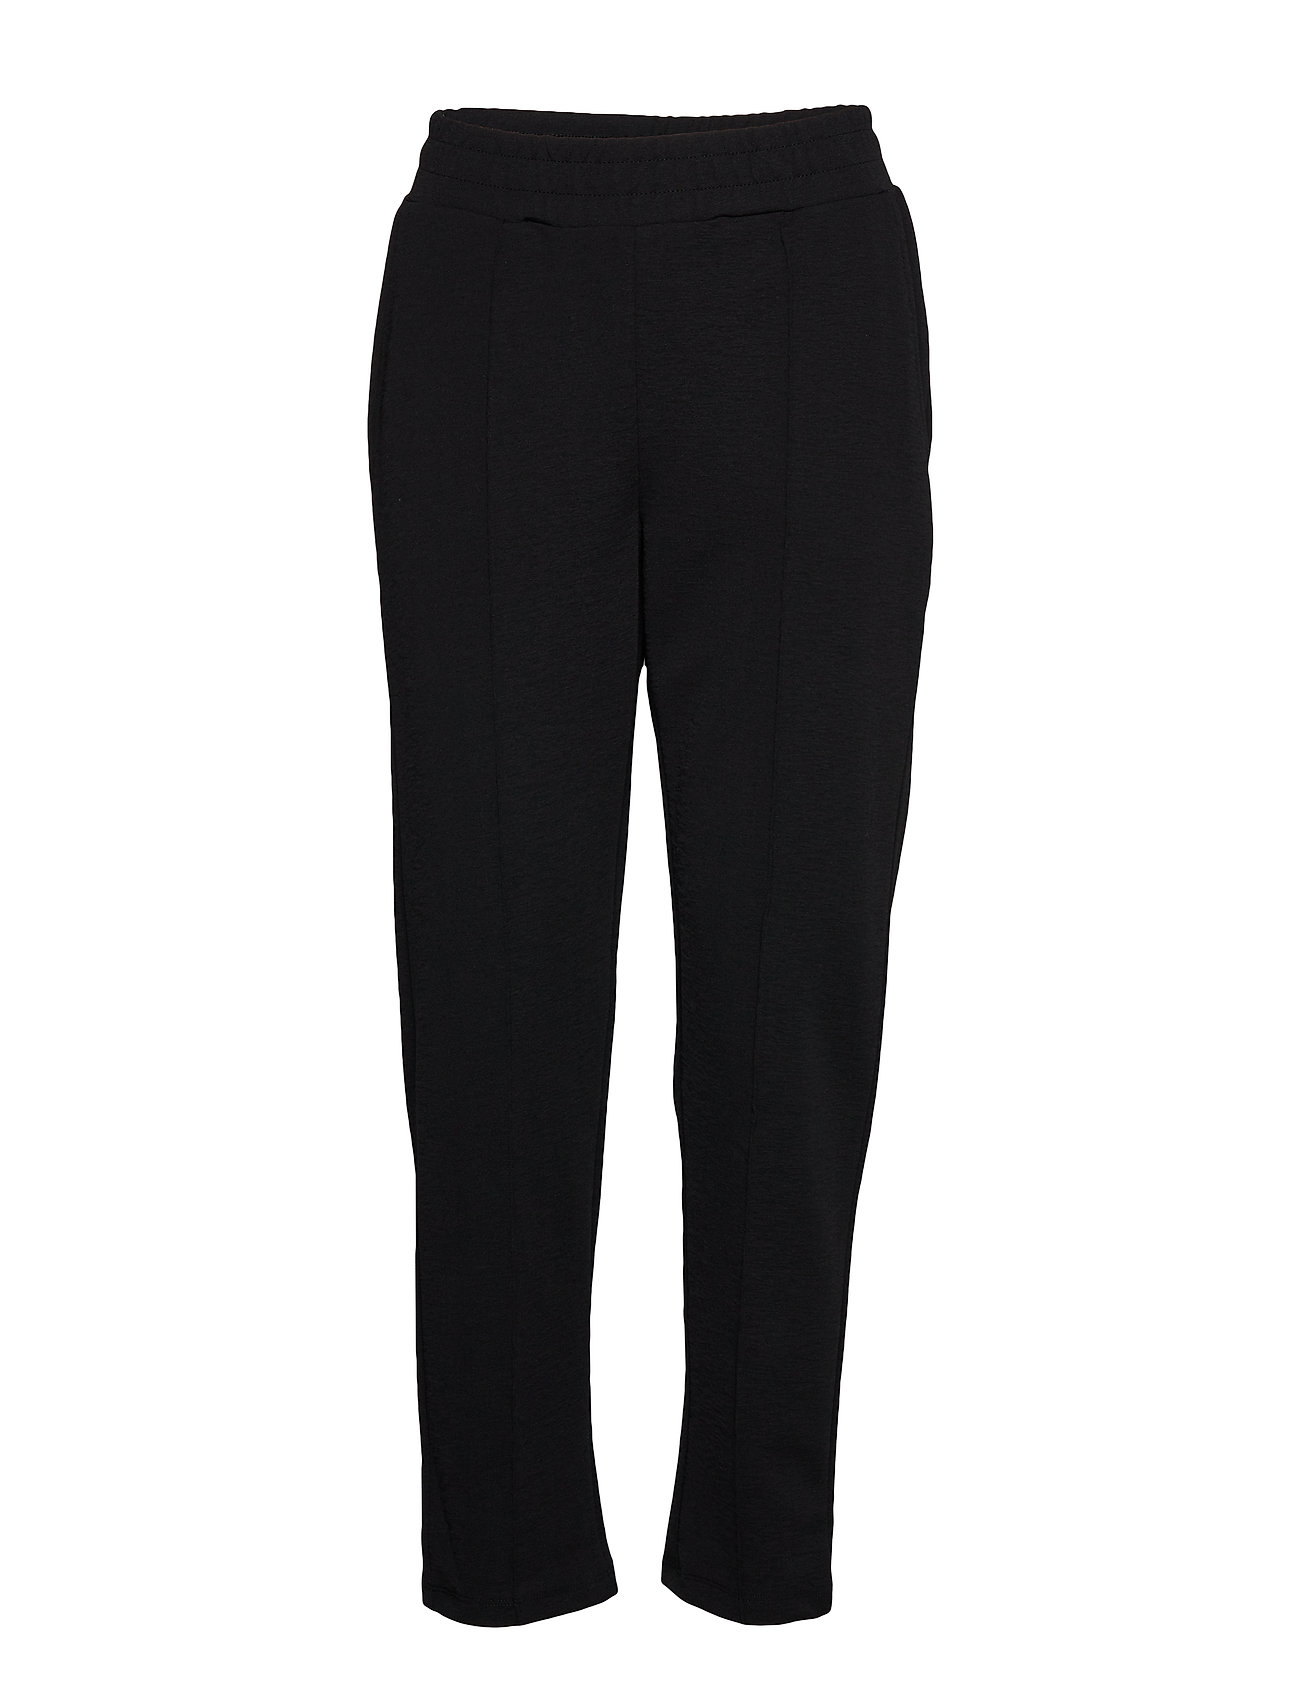 Gina Tricot Vicky trousers - BLACK